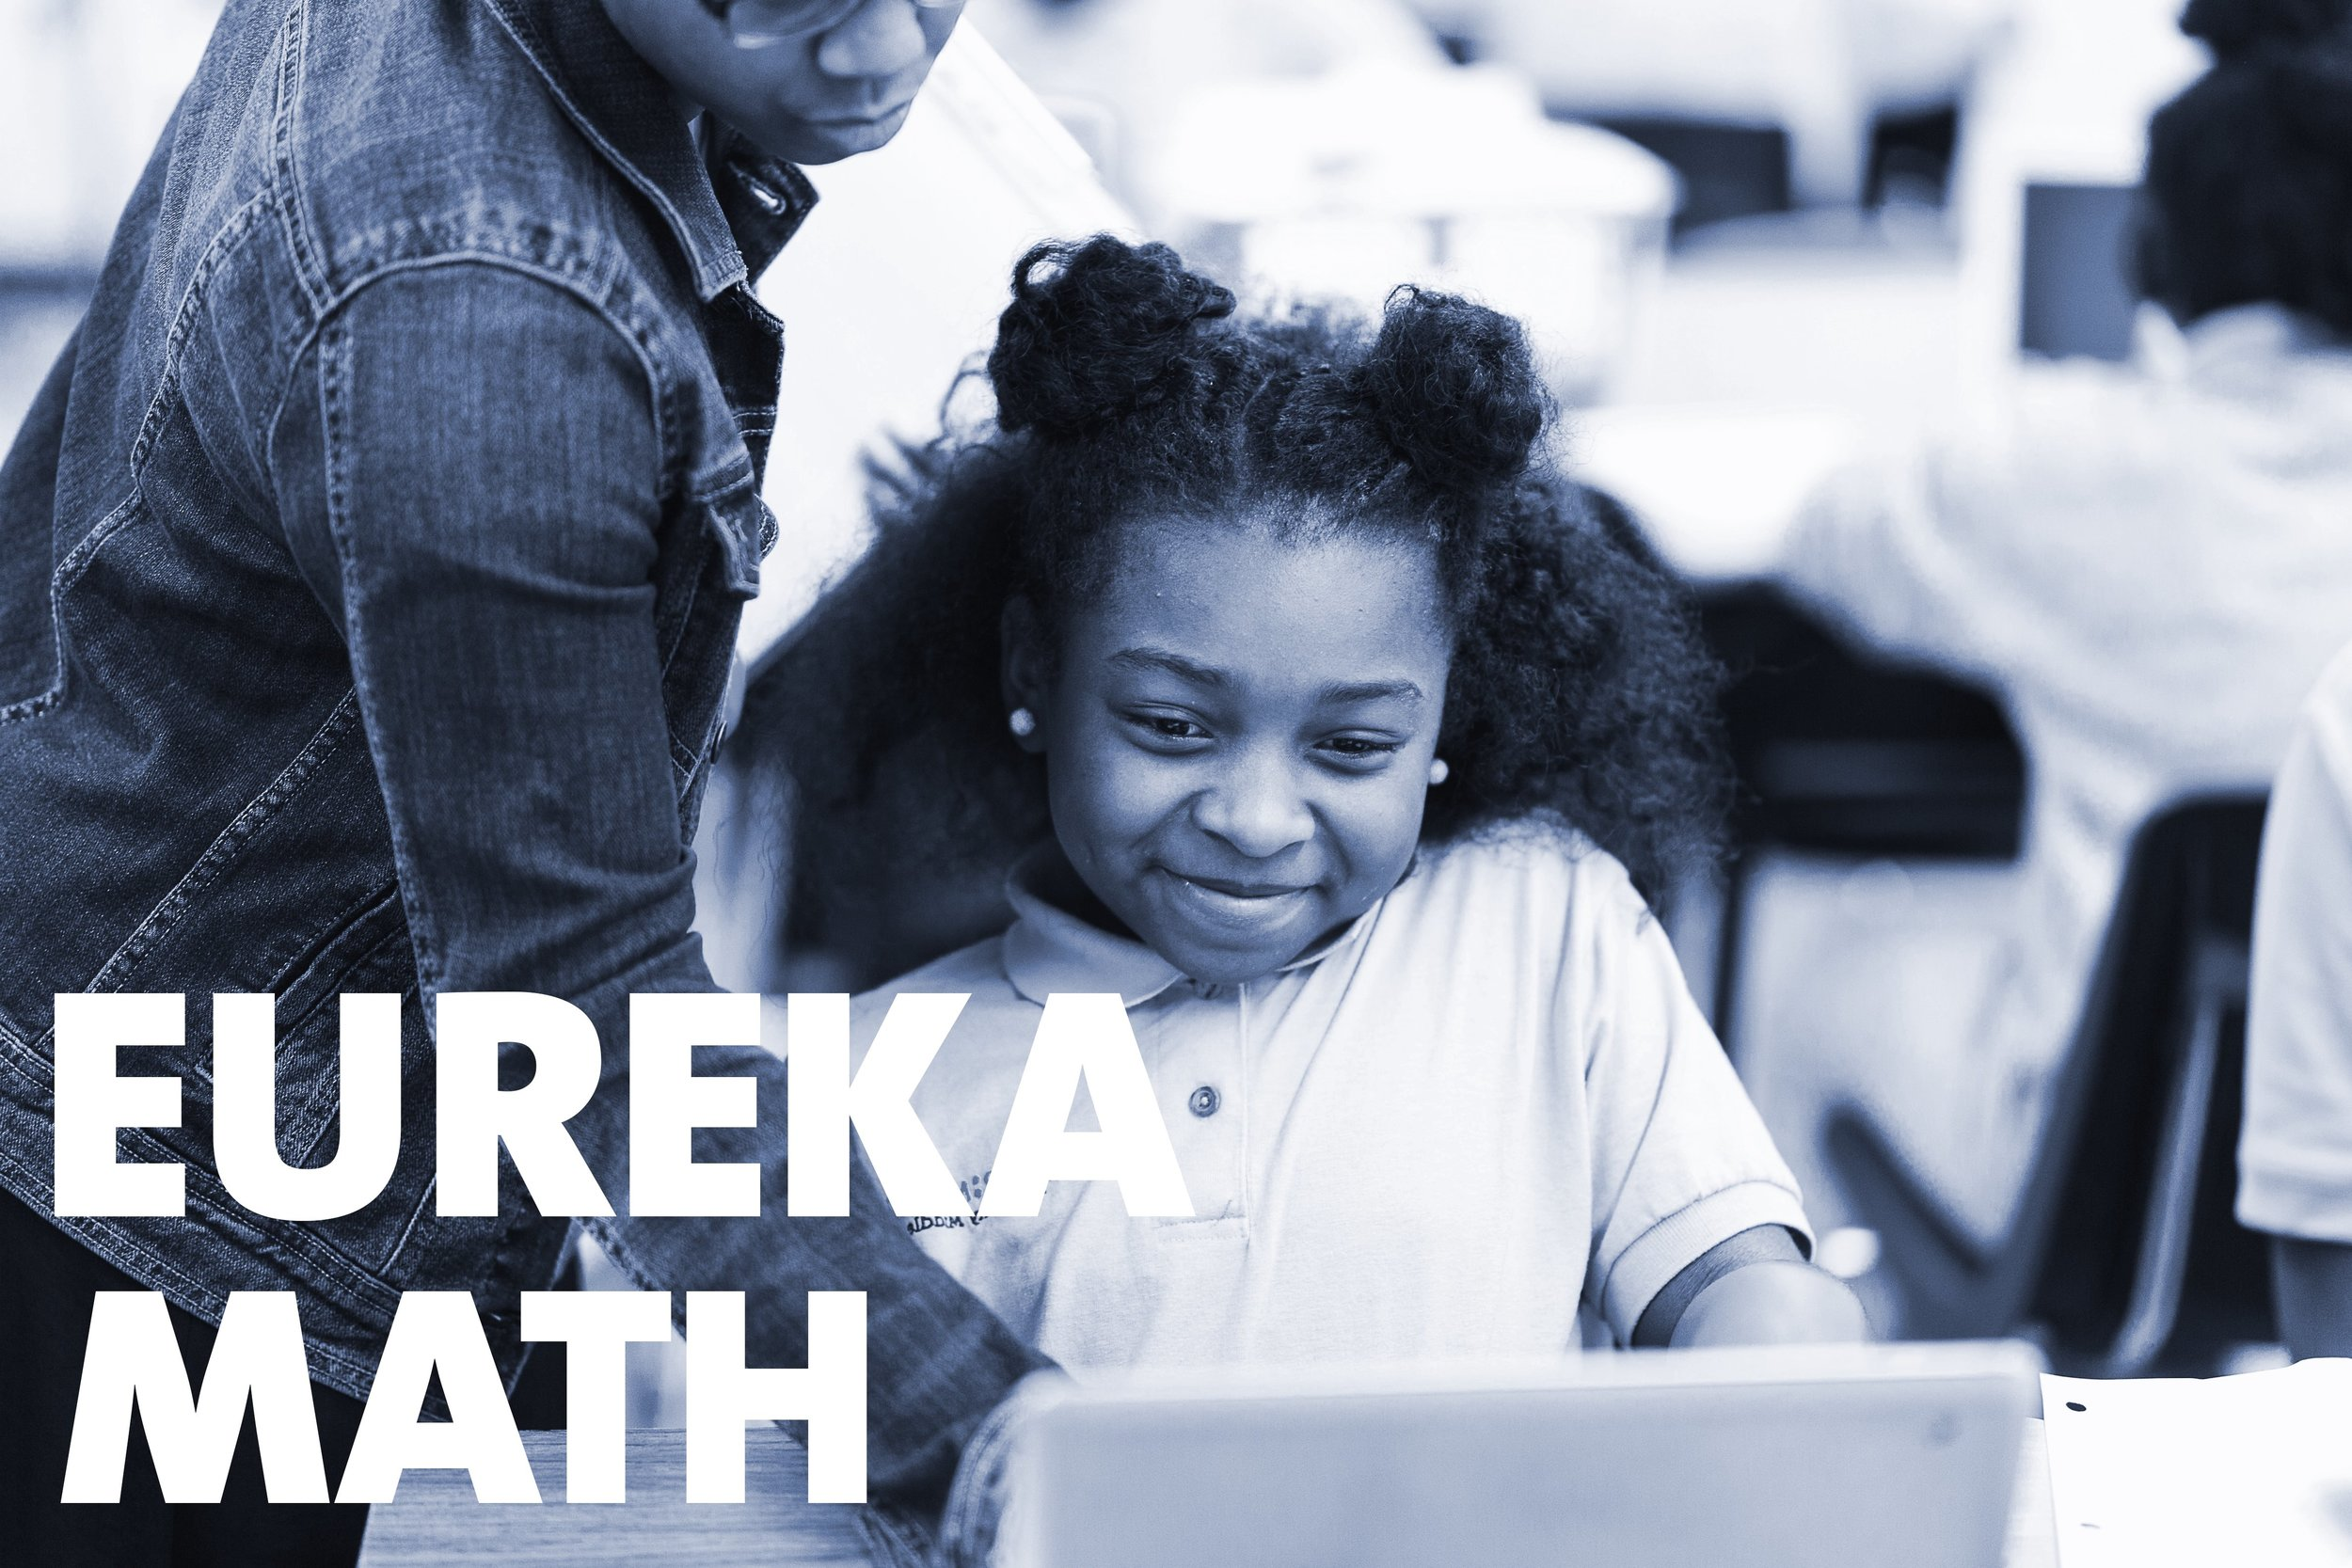 Math - Math is taught through Eureka Math a nationally-recognized curriculum that aligns college ready standards with instruction for grades PK-12. Published by Great Minds, Eureka Math presents mathematics in a logical progression designed to reduce learning gaps, develop persistence in problem solving, and prepare students to understand advanced mathematical concepts.